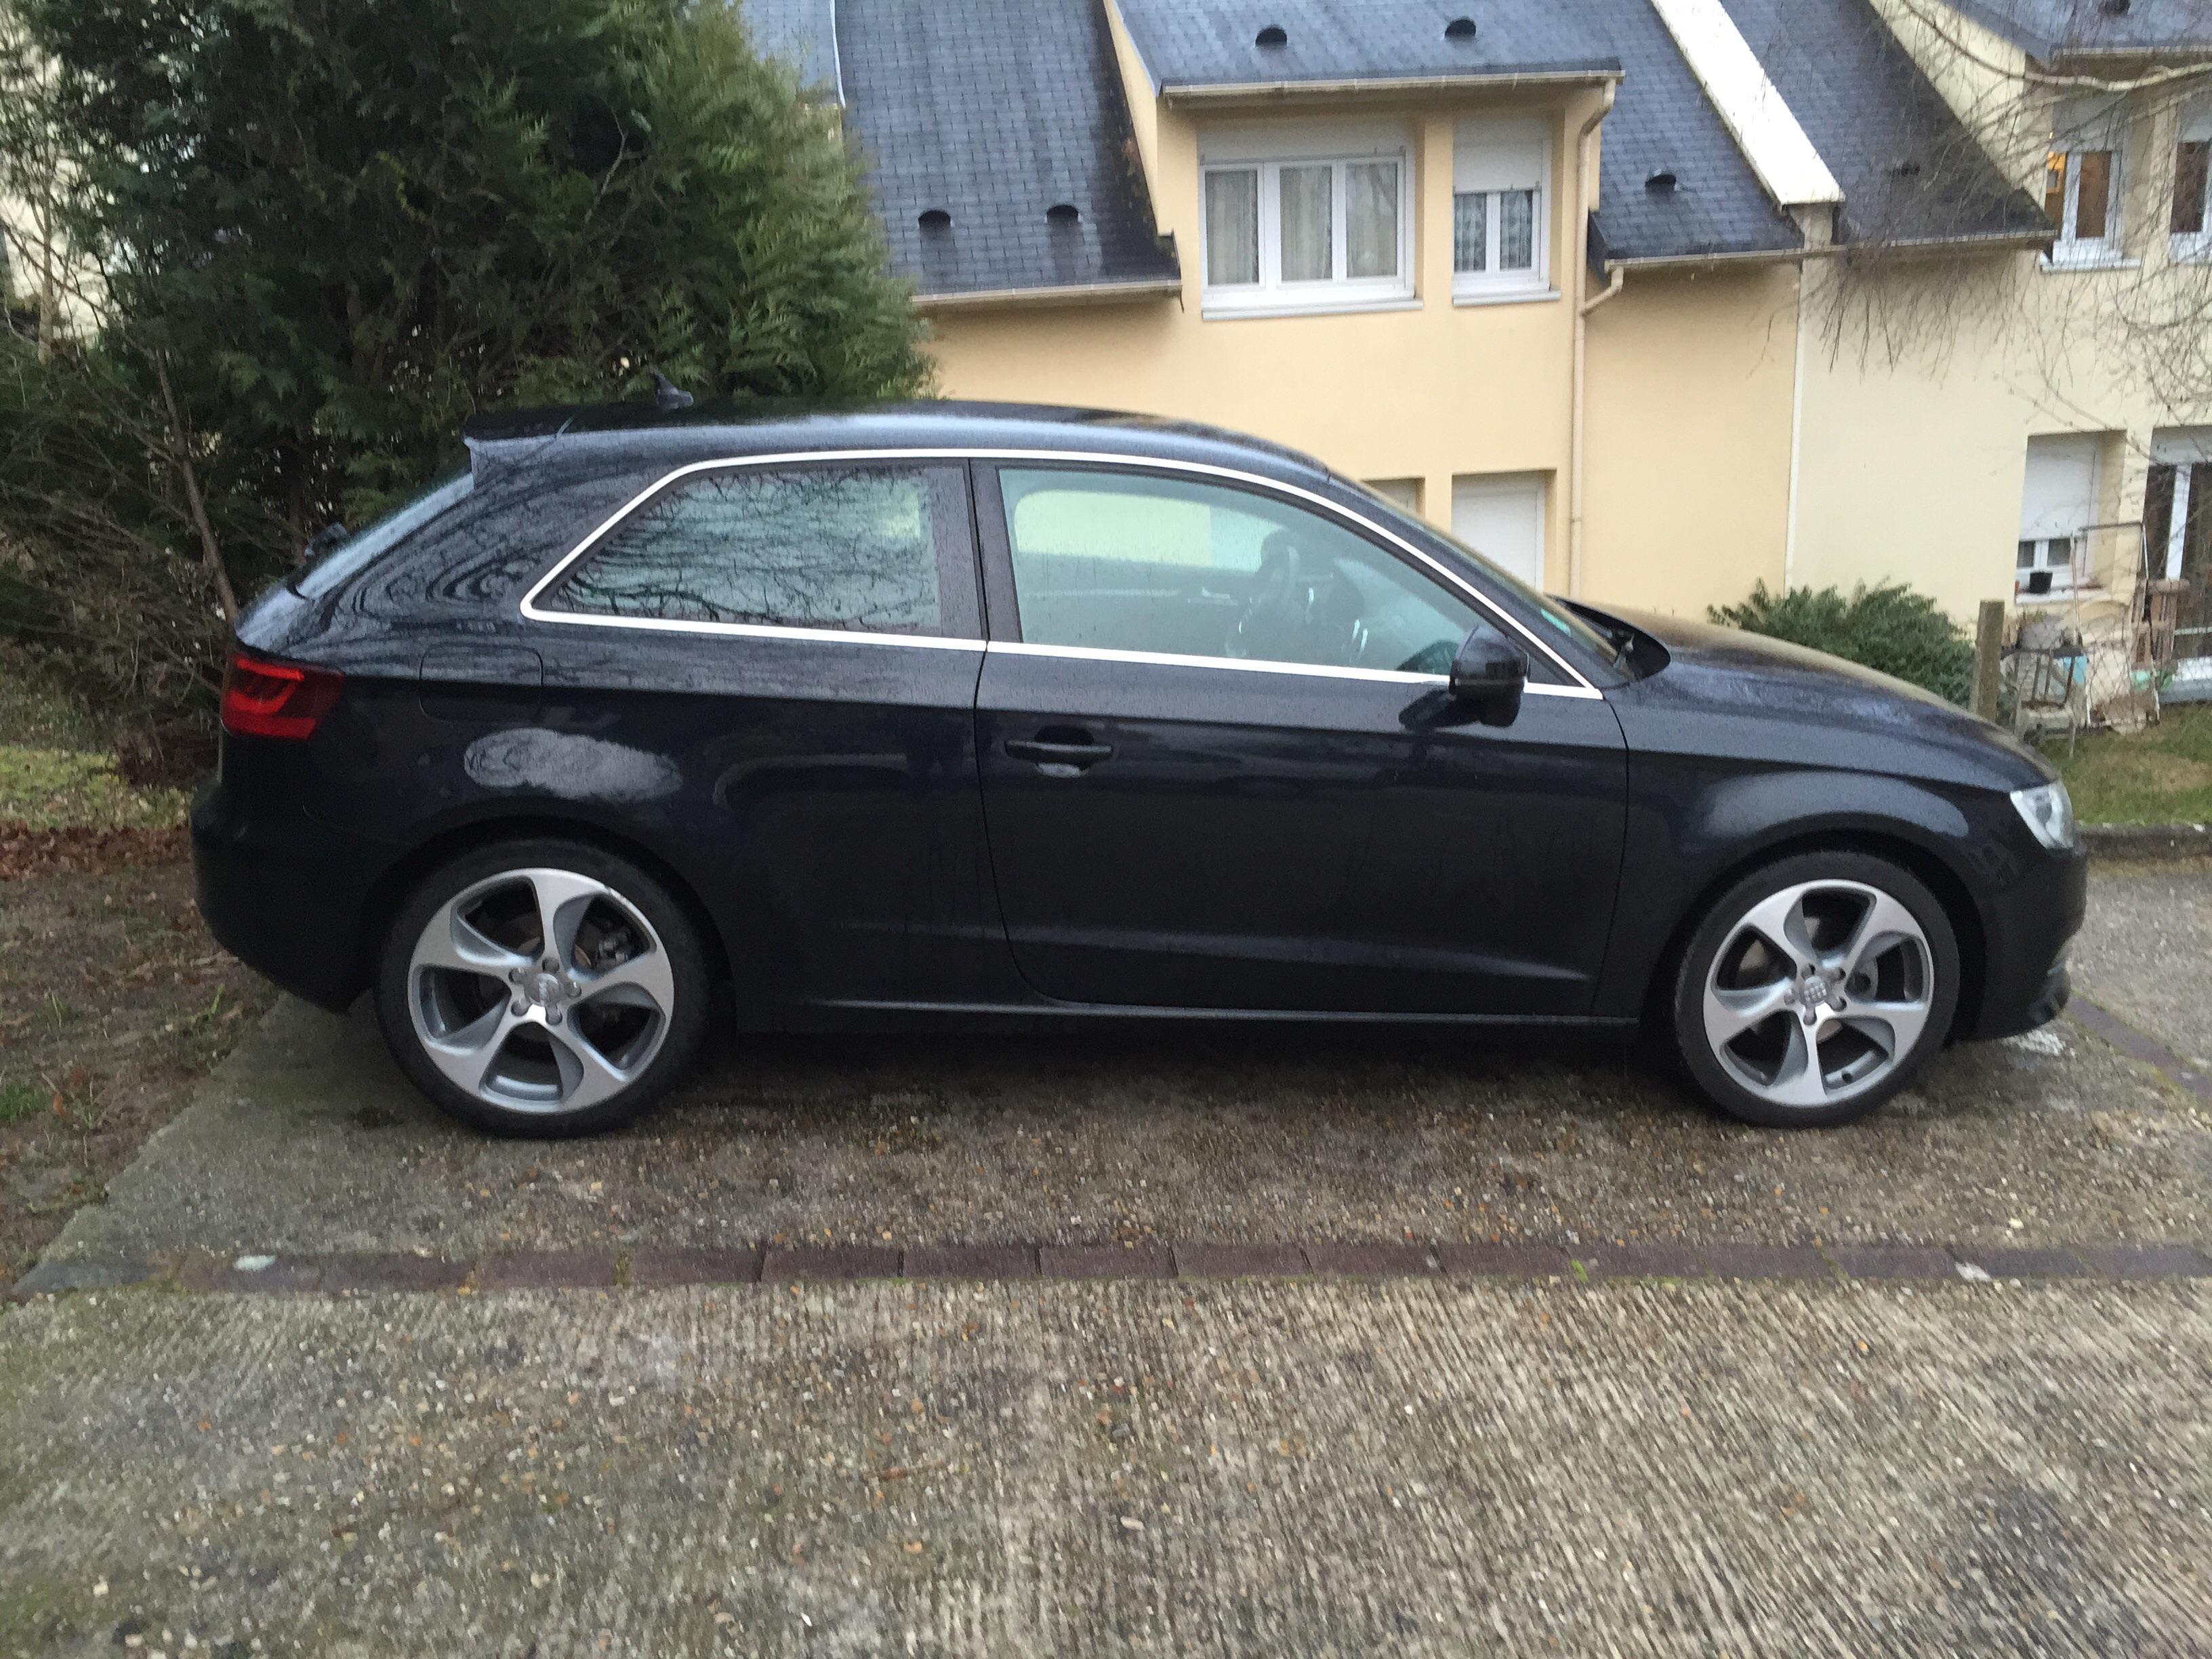 hypposes 2 0 tdi 150ch ambition luxe 2012 garages des a3 8v 2 0 tdi 150ch forum audi a3. Black Bedroom Furniture Sets. Home Design Ideas